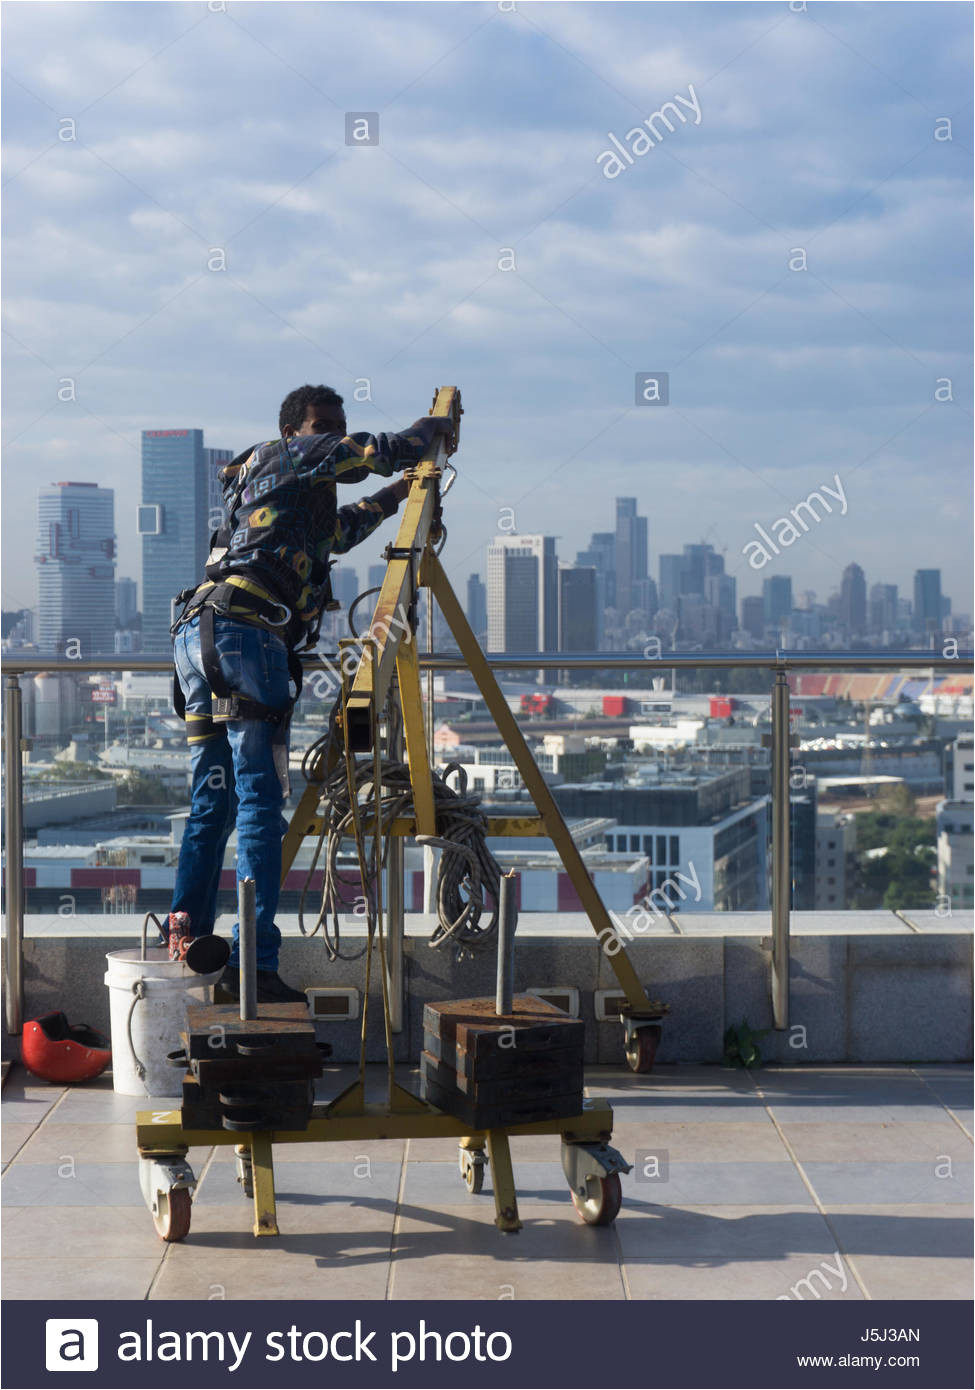 window cleaning employee with work tools and city background stock image